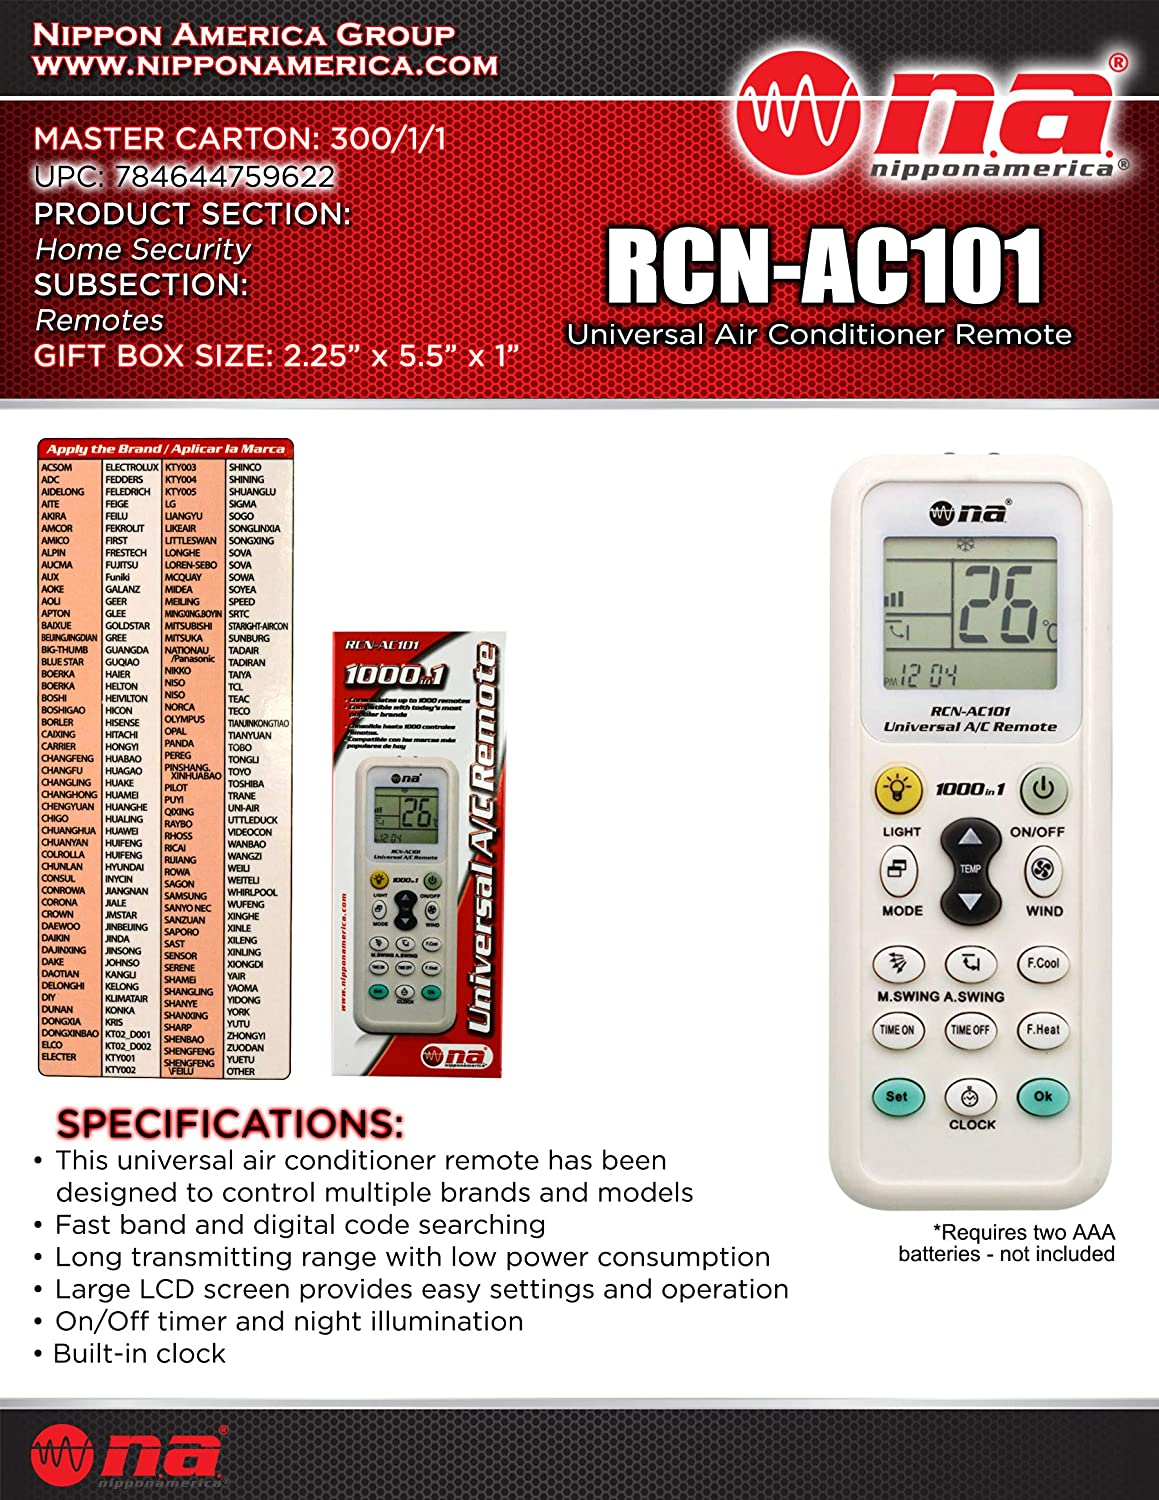 Universal Air Conditioner Remote Control for Daikin, Hitachi, Carrier, Panasonic, LG, Sharp, Haier, Gree, Midea, Whirlpool, Bosch, Olympus, Toshiba, Samsung and 1000 More Brands